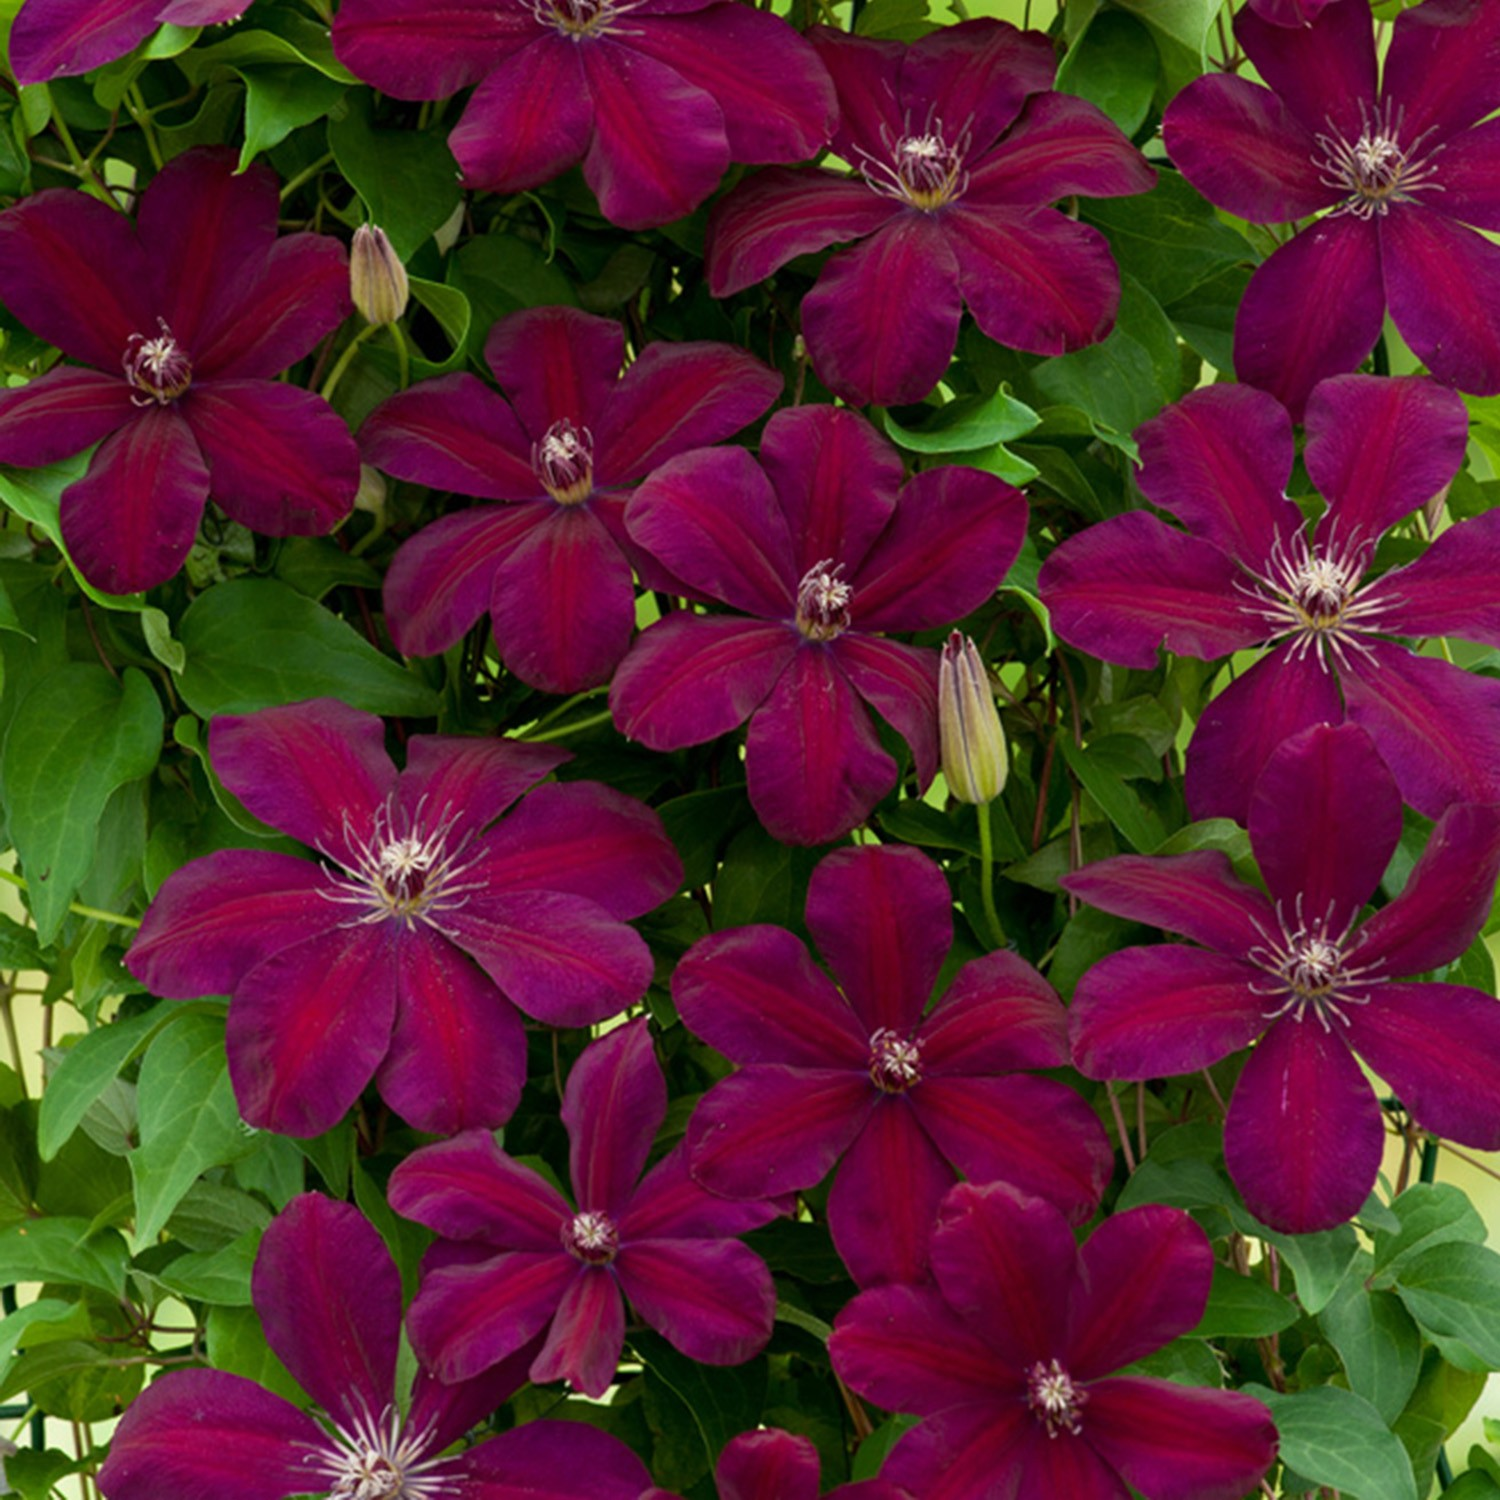 clematis-rouge-cardinal-donkerrood